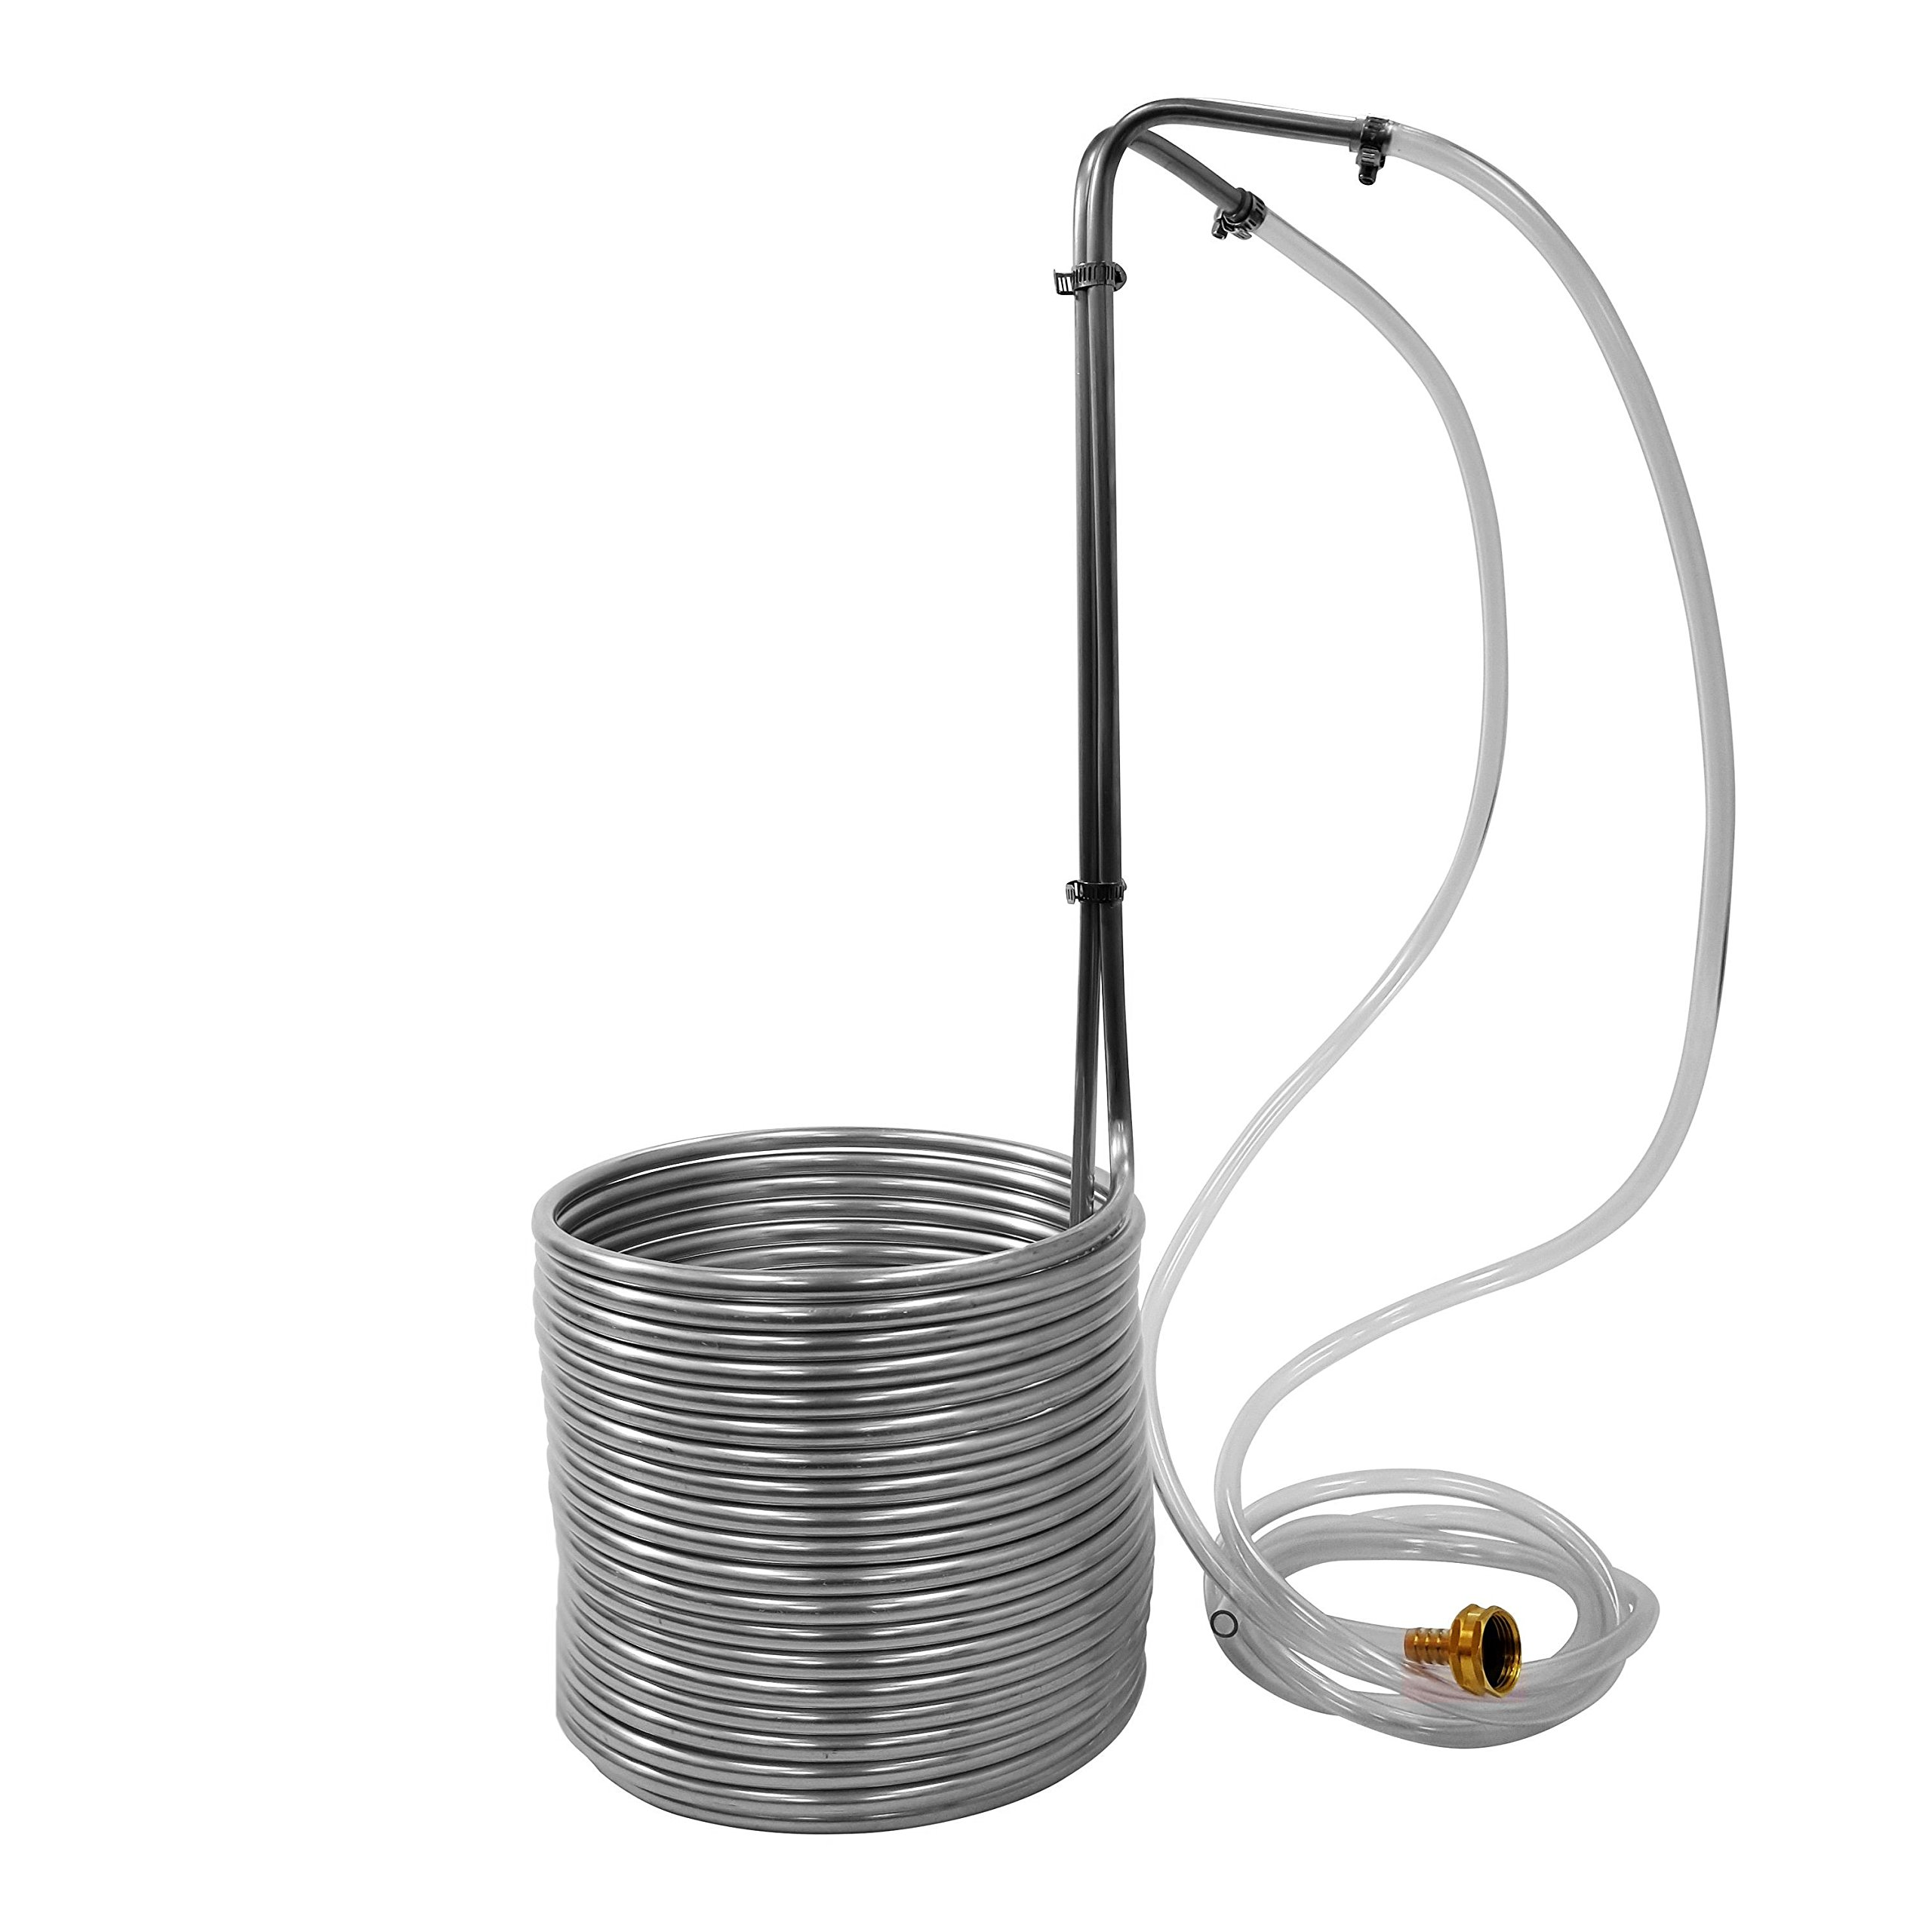 Super Efficient 3/8'' x 50' Stainless Steel Wort Chiller by NY Brew Supply